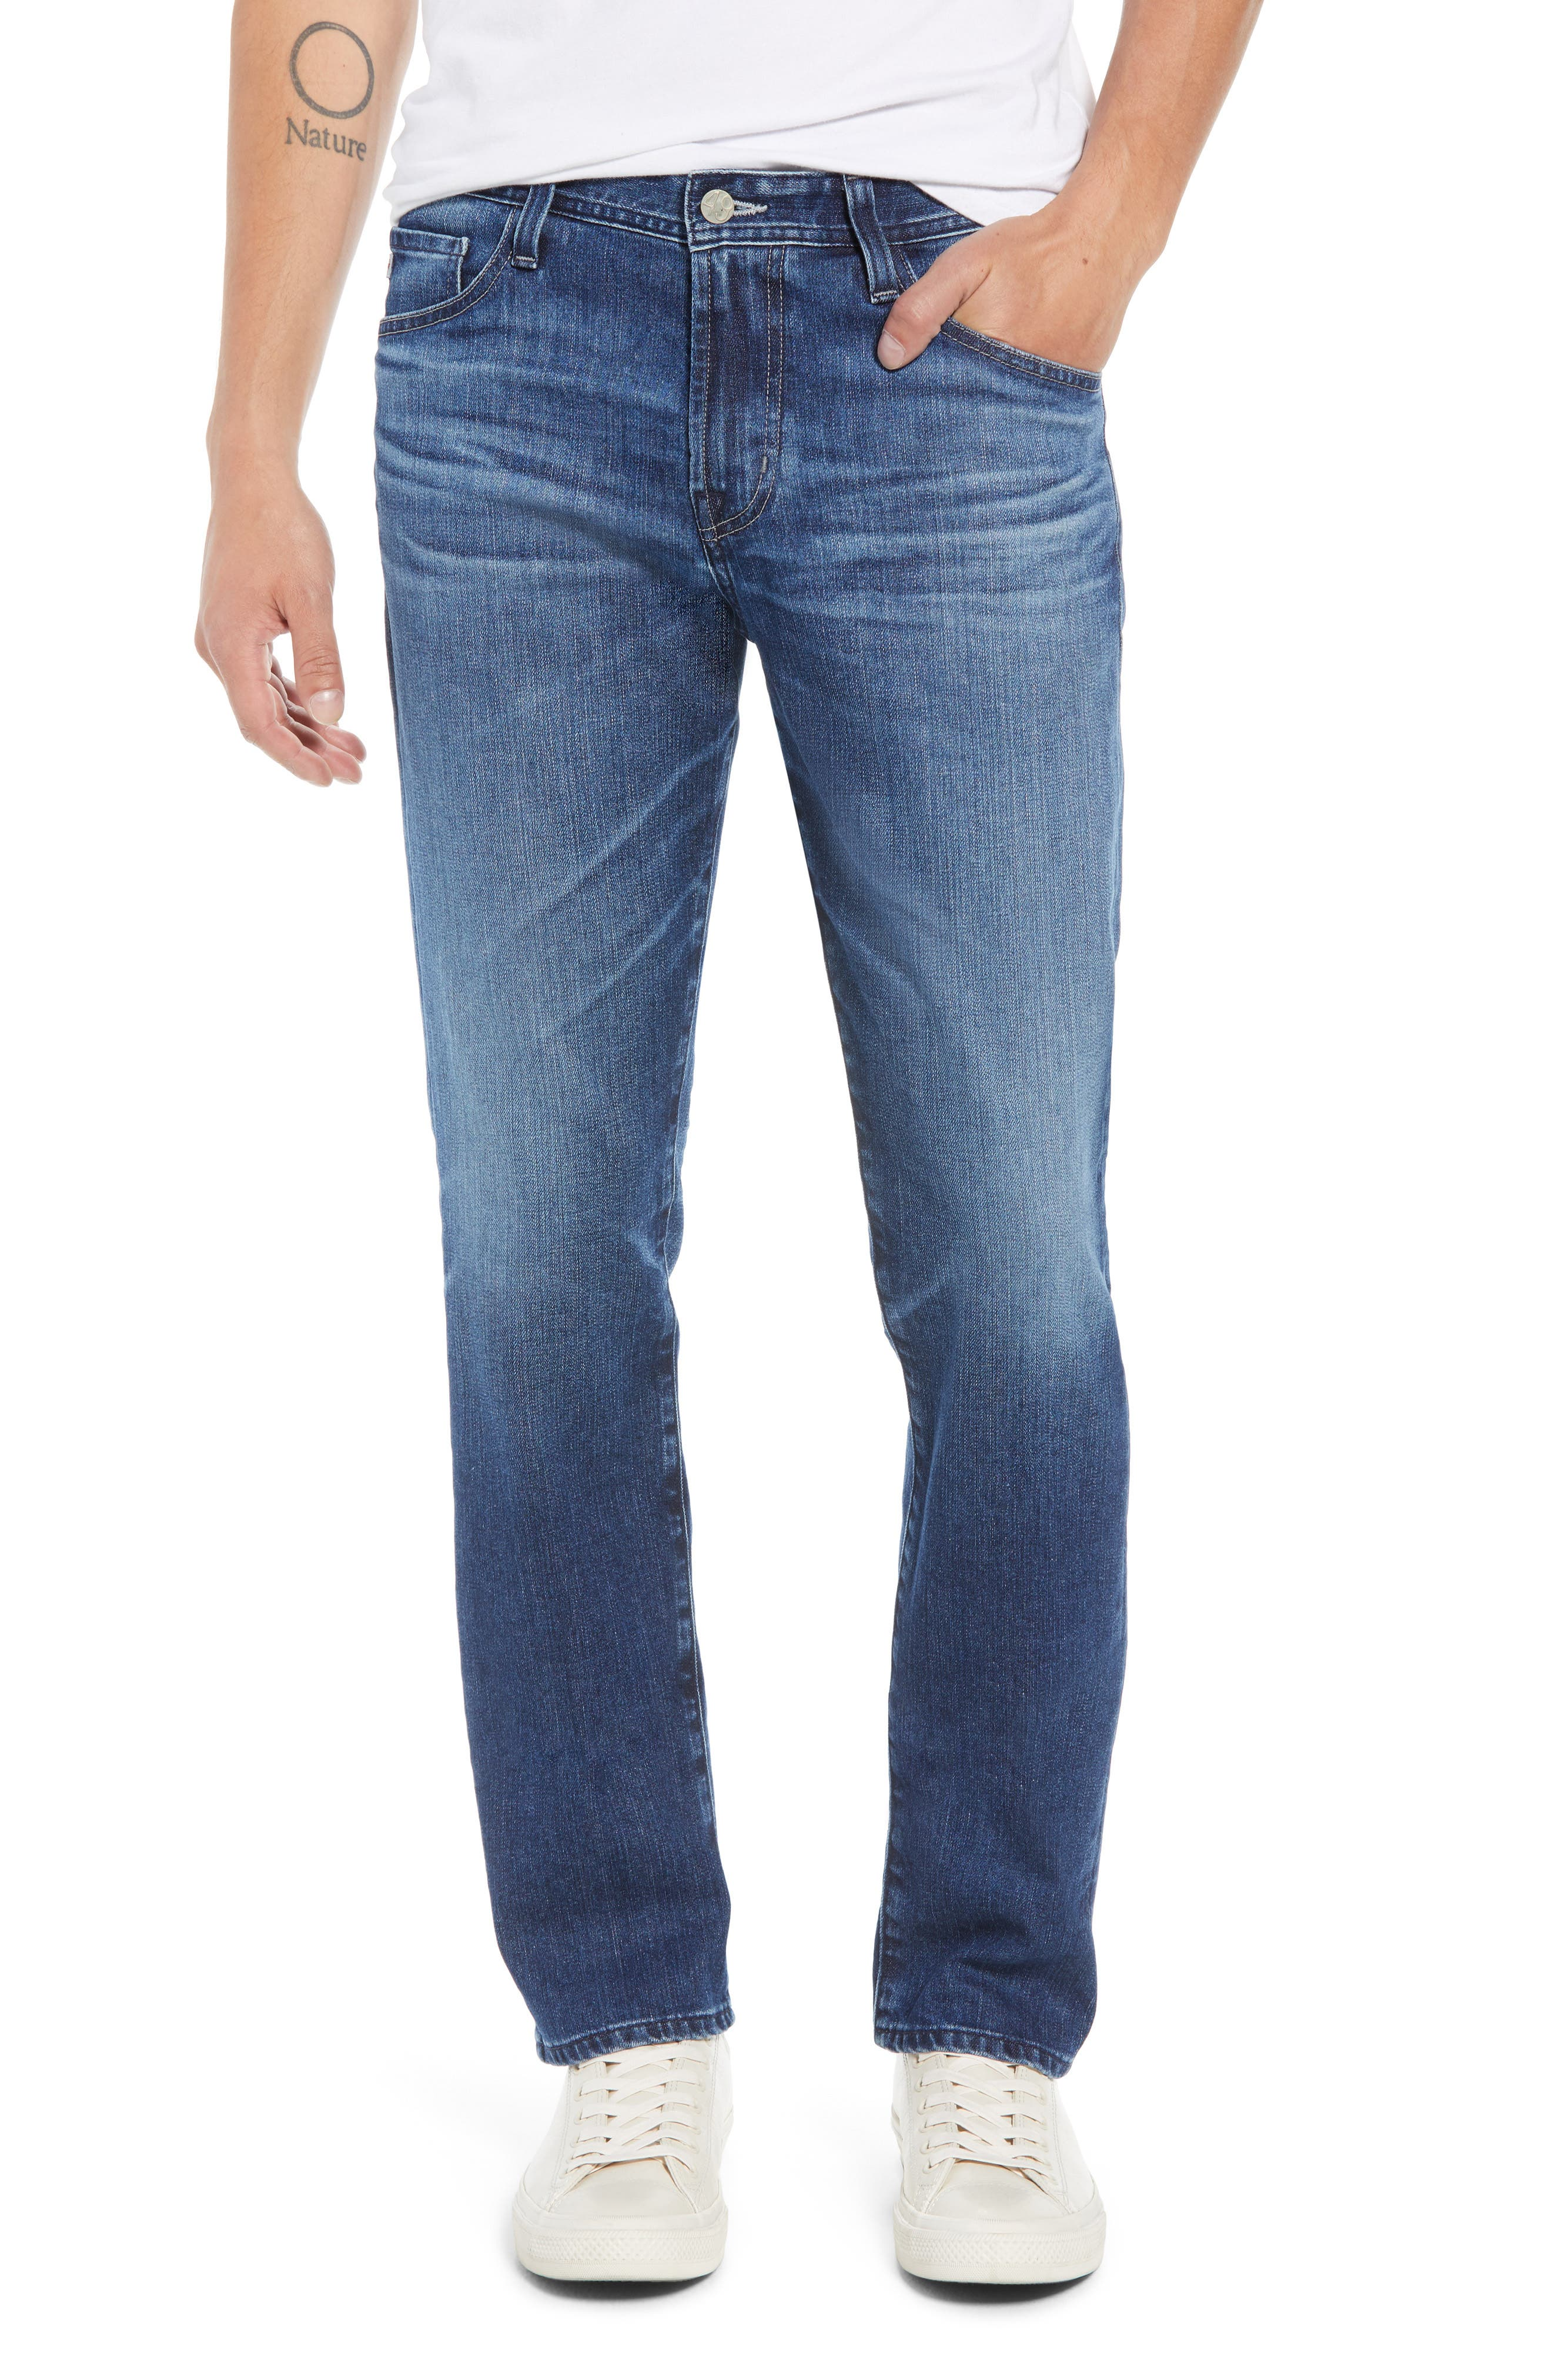 Everett Slim Straight Leg Jeans,                             Main thumbnail 1, color,                             9 YEARS SEQUENCE